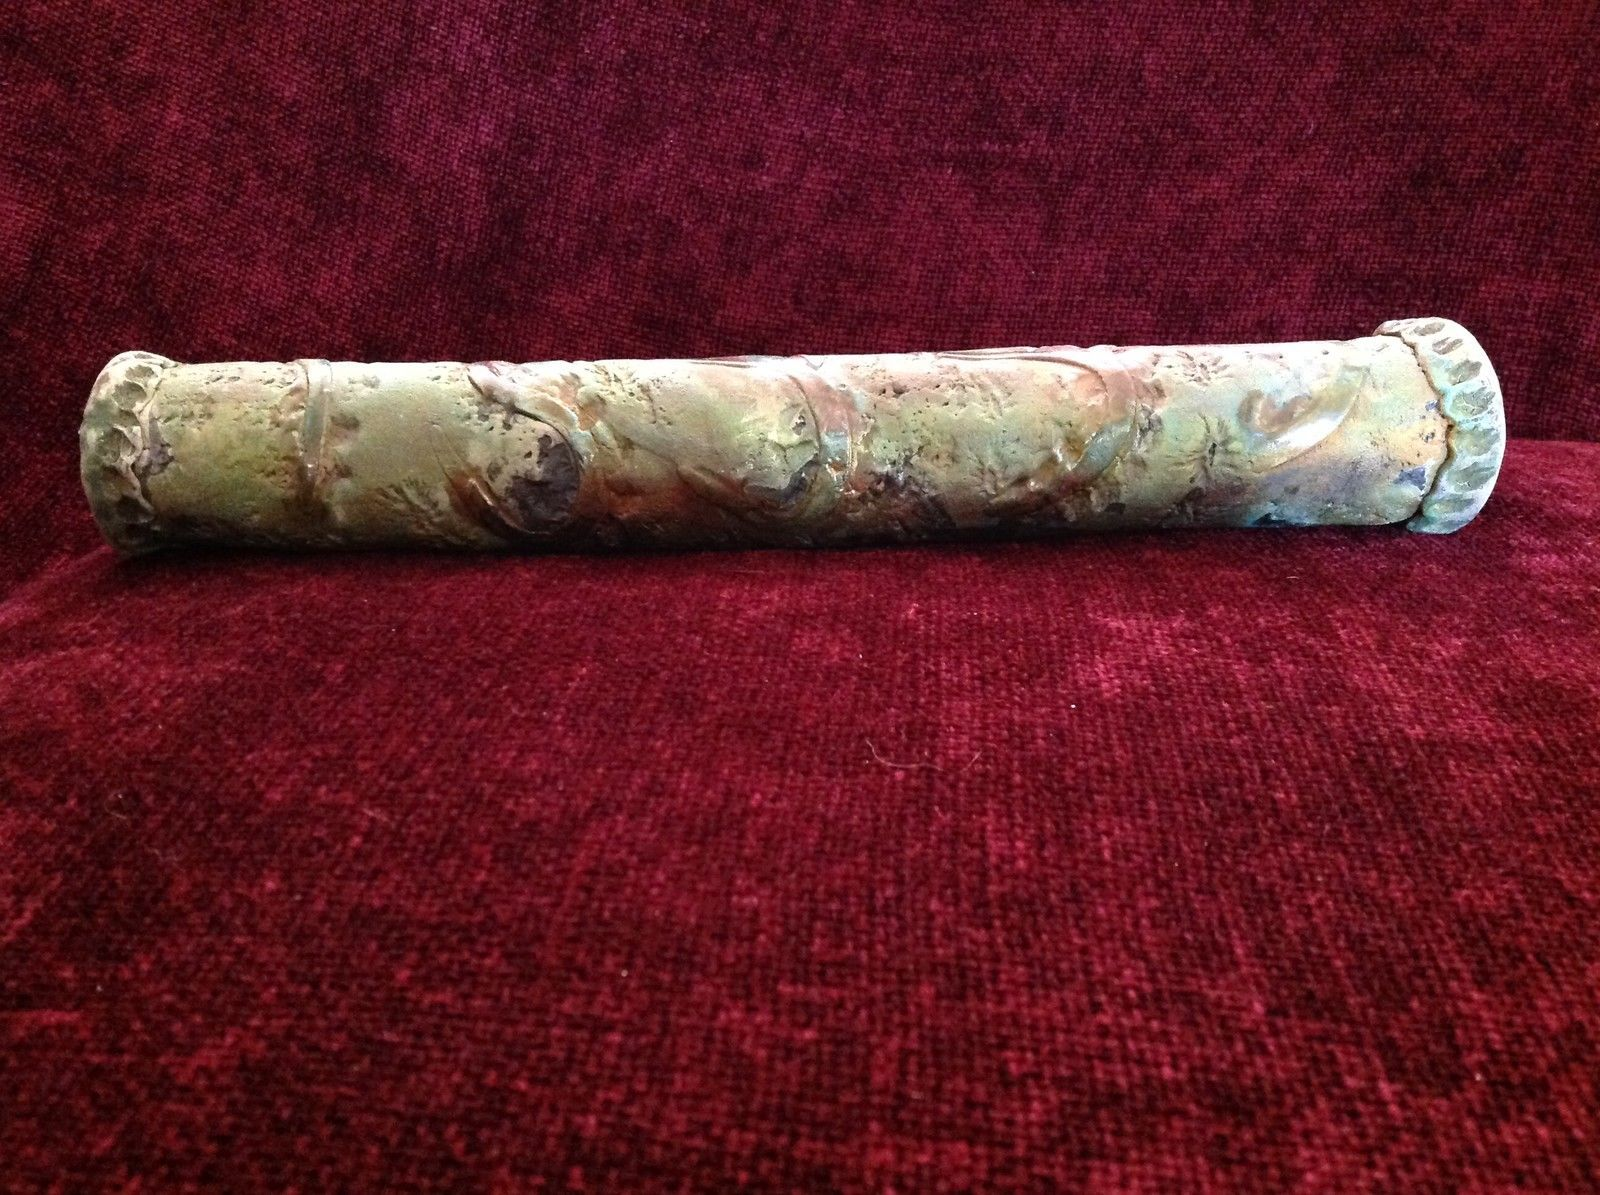 Green Handmade Raku Ceramic Rain Stick Intricate Designs 14 Inches Long